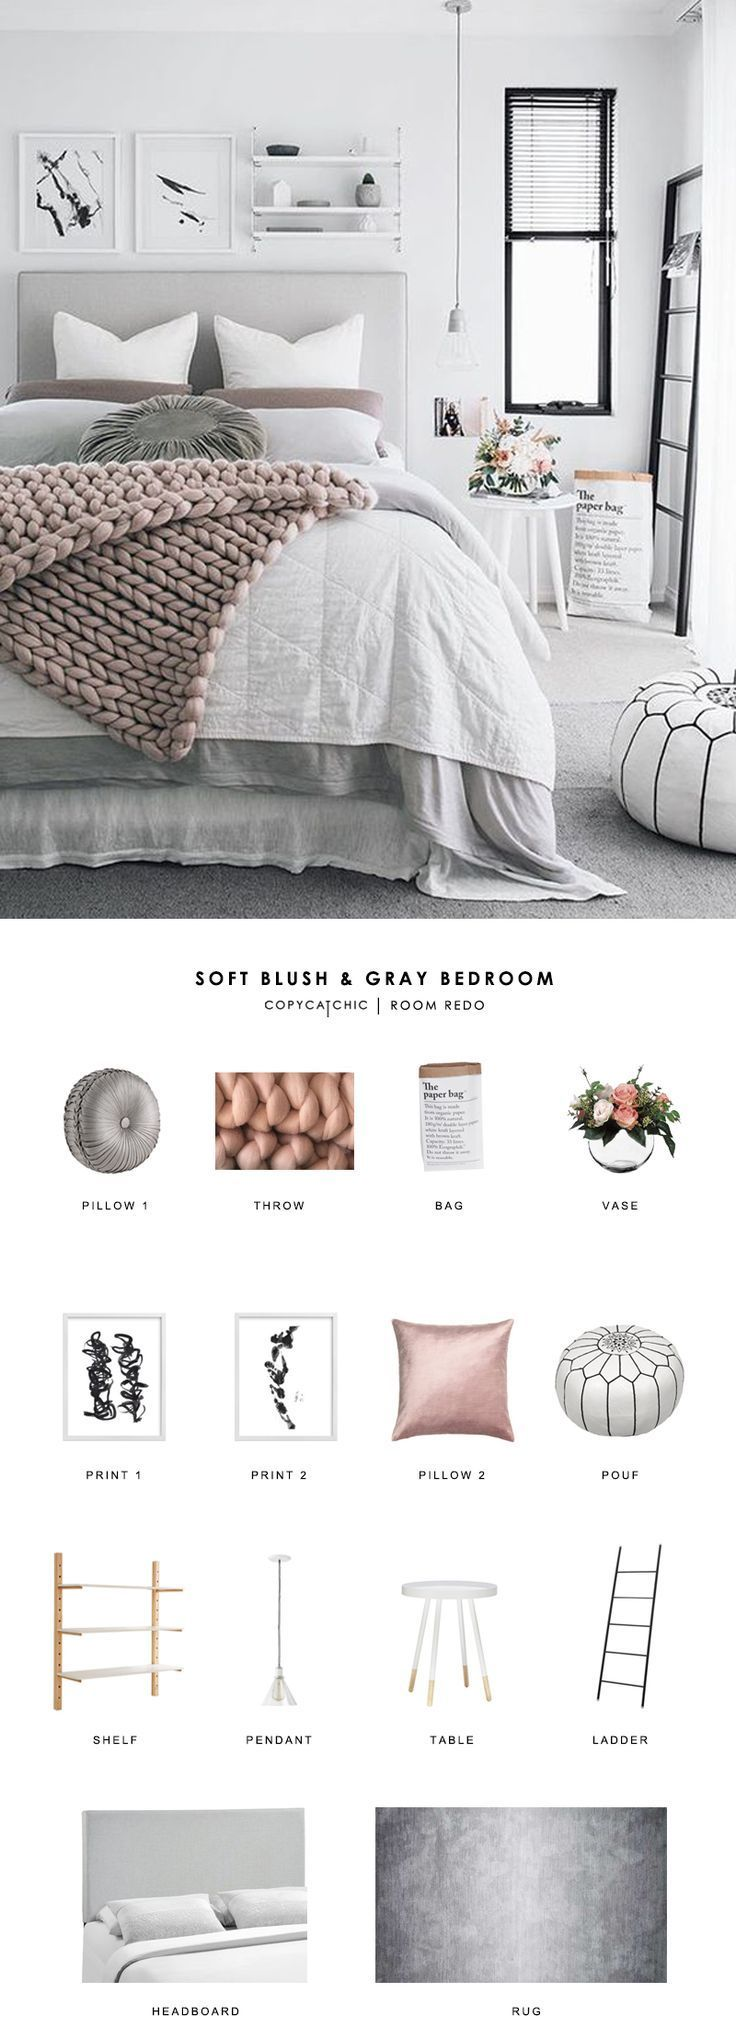 Copy Cat Chic Room Redo | Soft Blush and Gray Bedroom | Copy Cat Chic | Bloglovi...